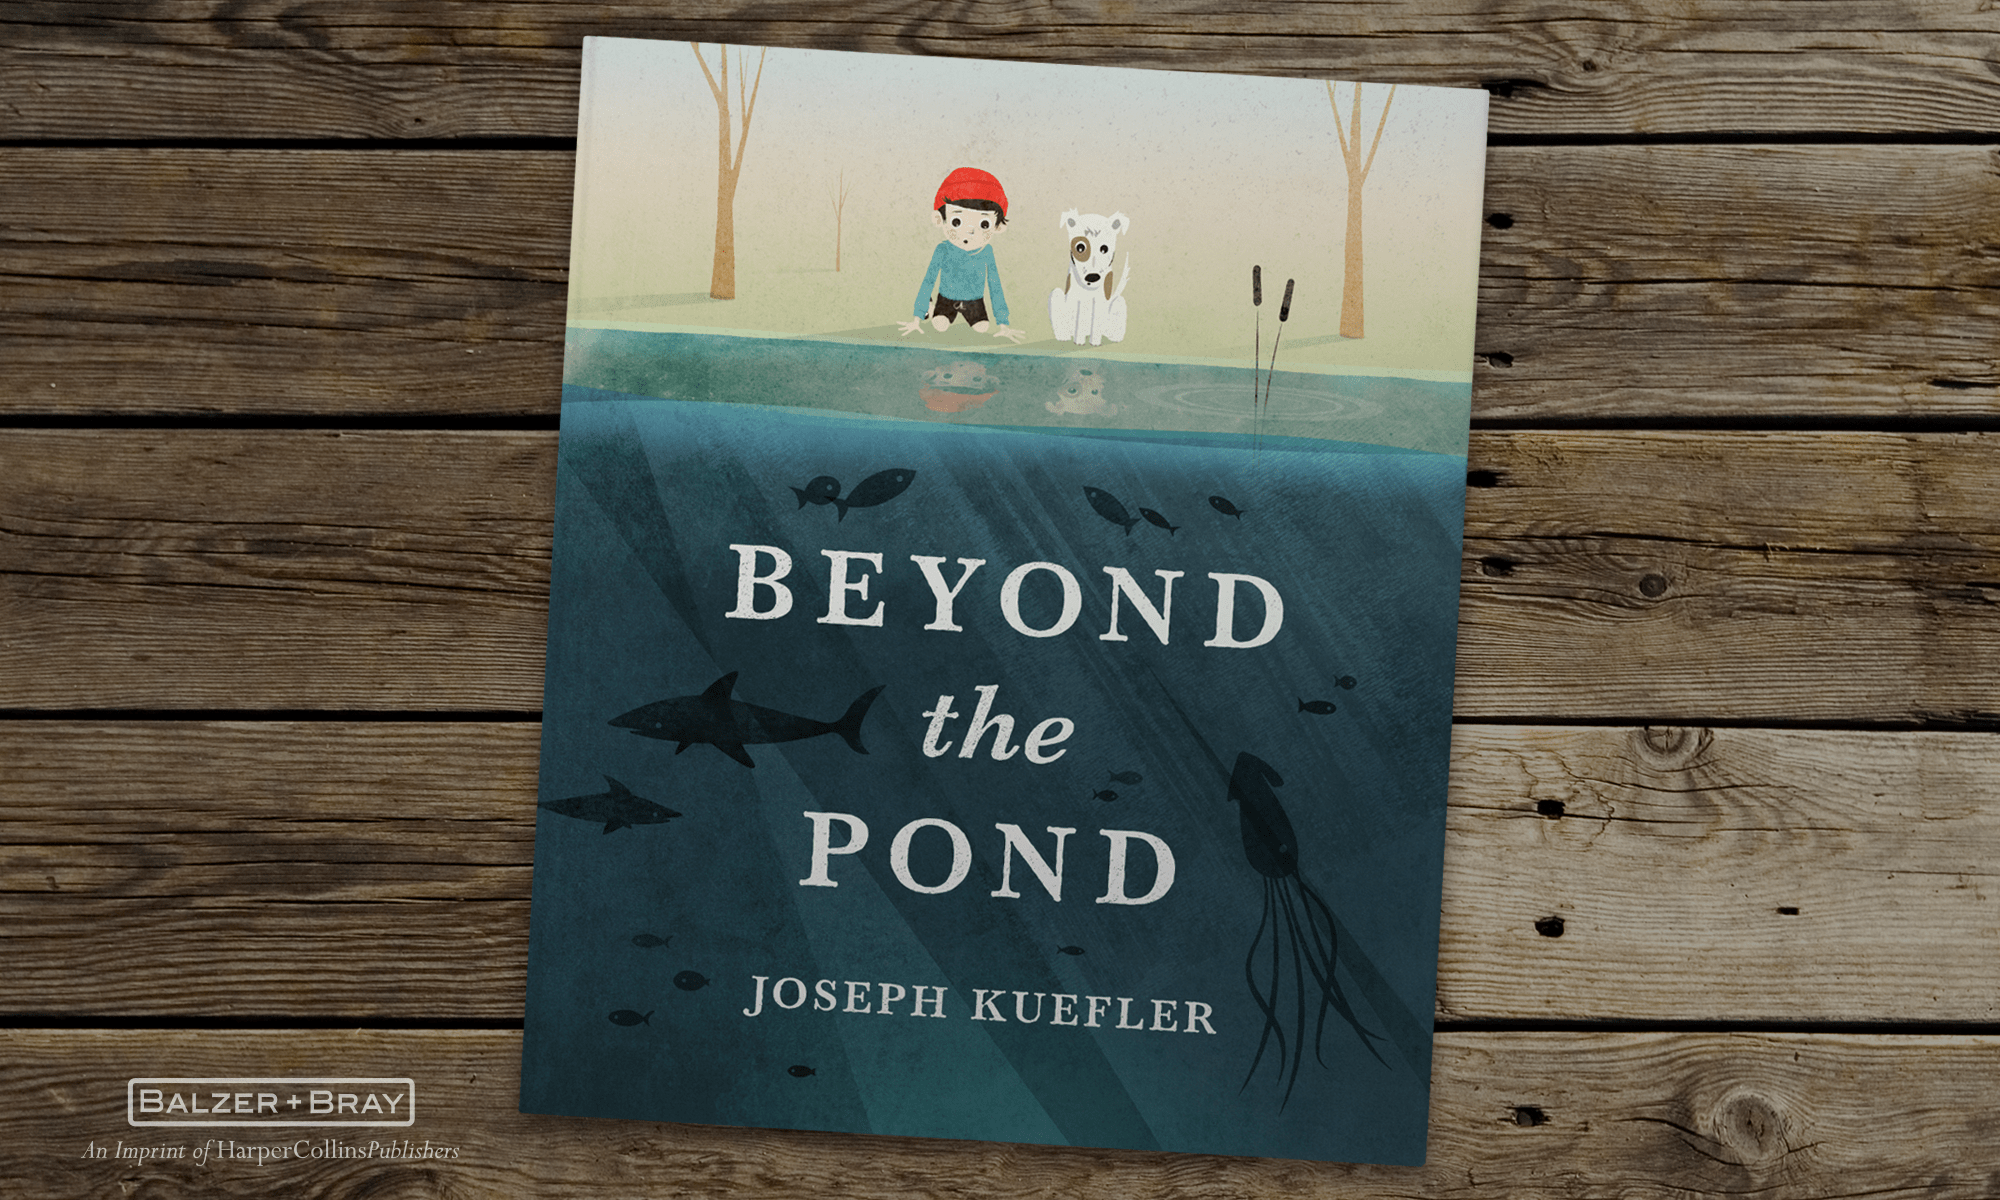 Joseph-Kuefler-Beyond-the-Pond-Cover